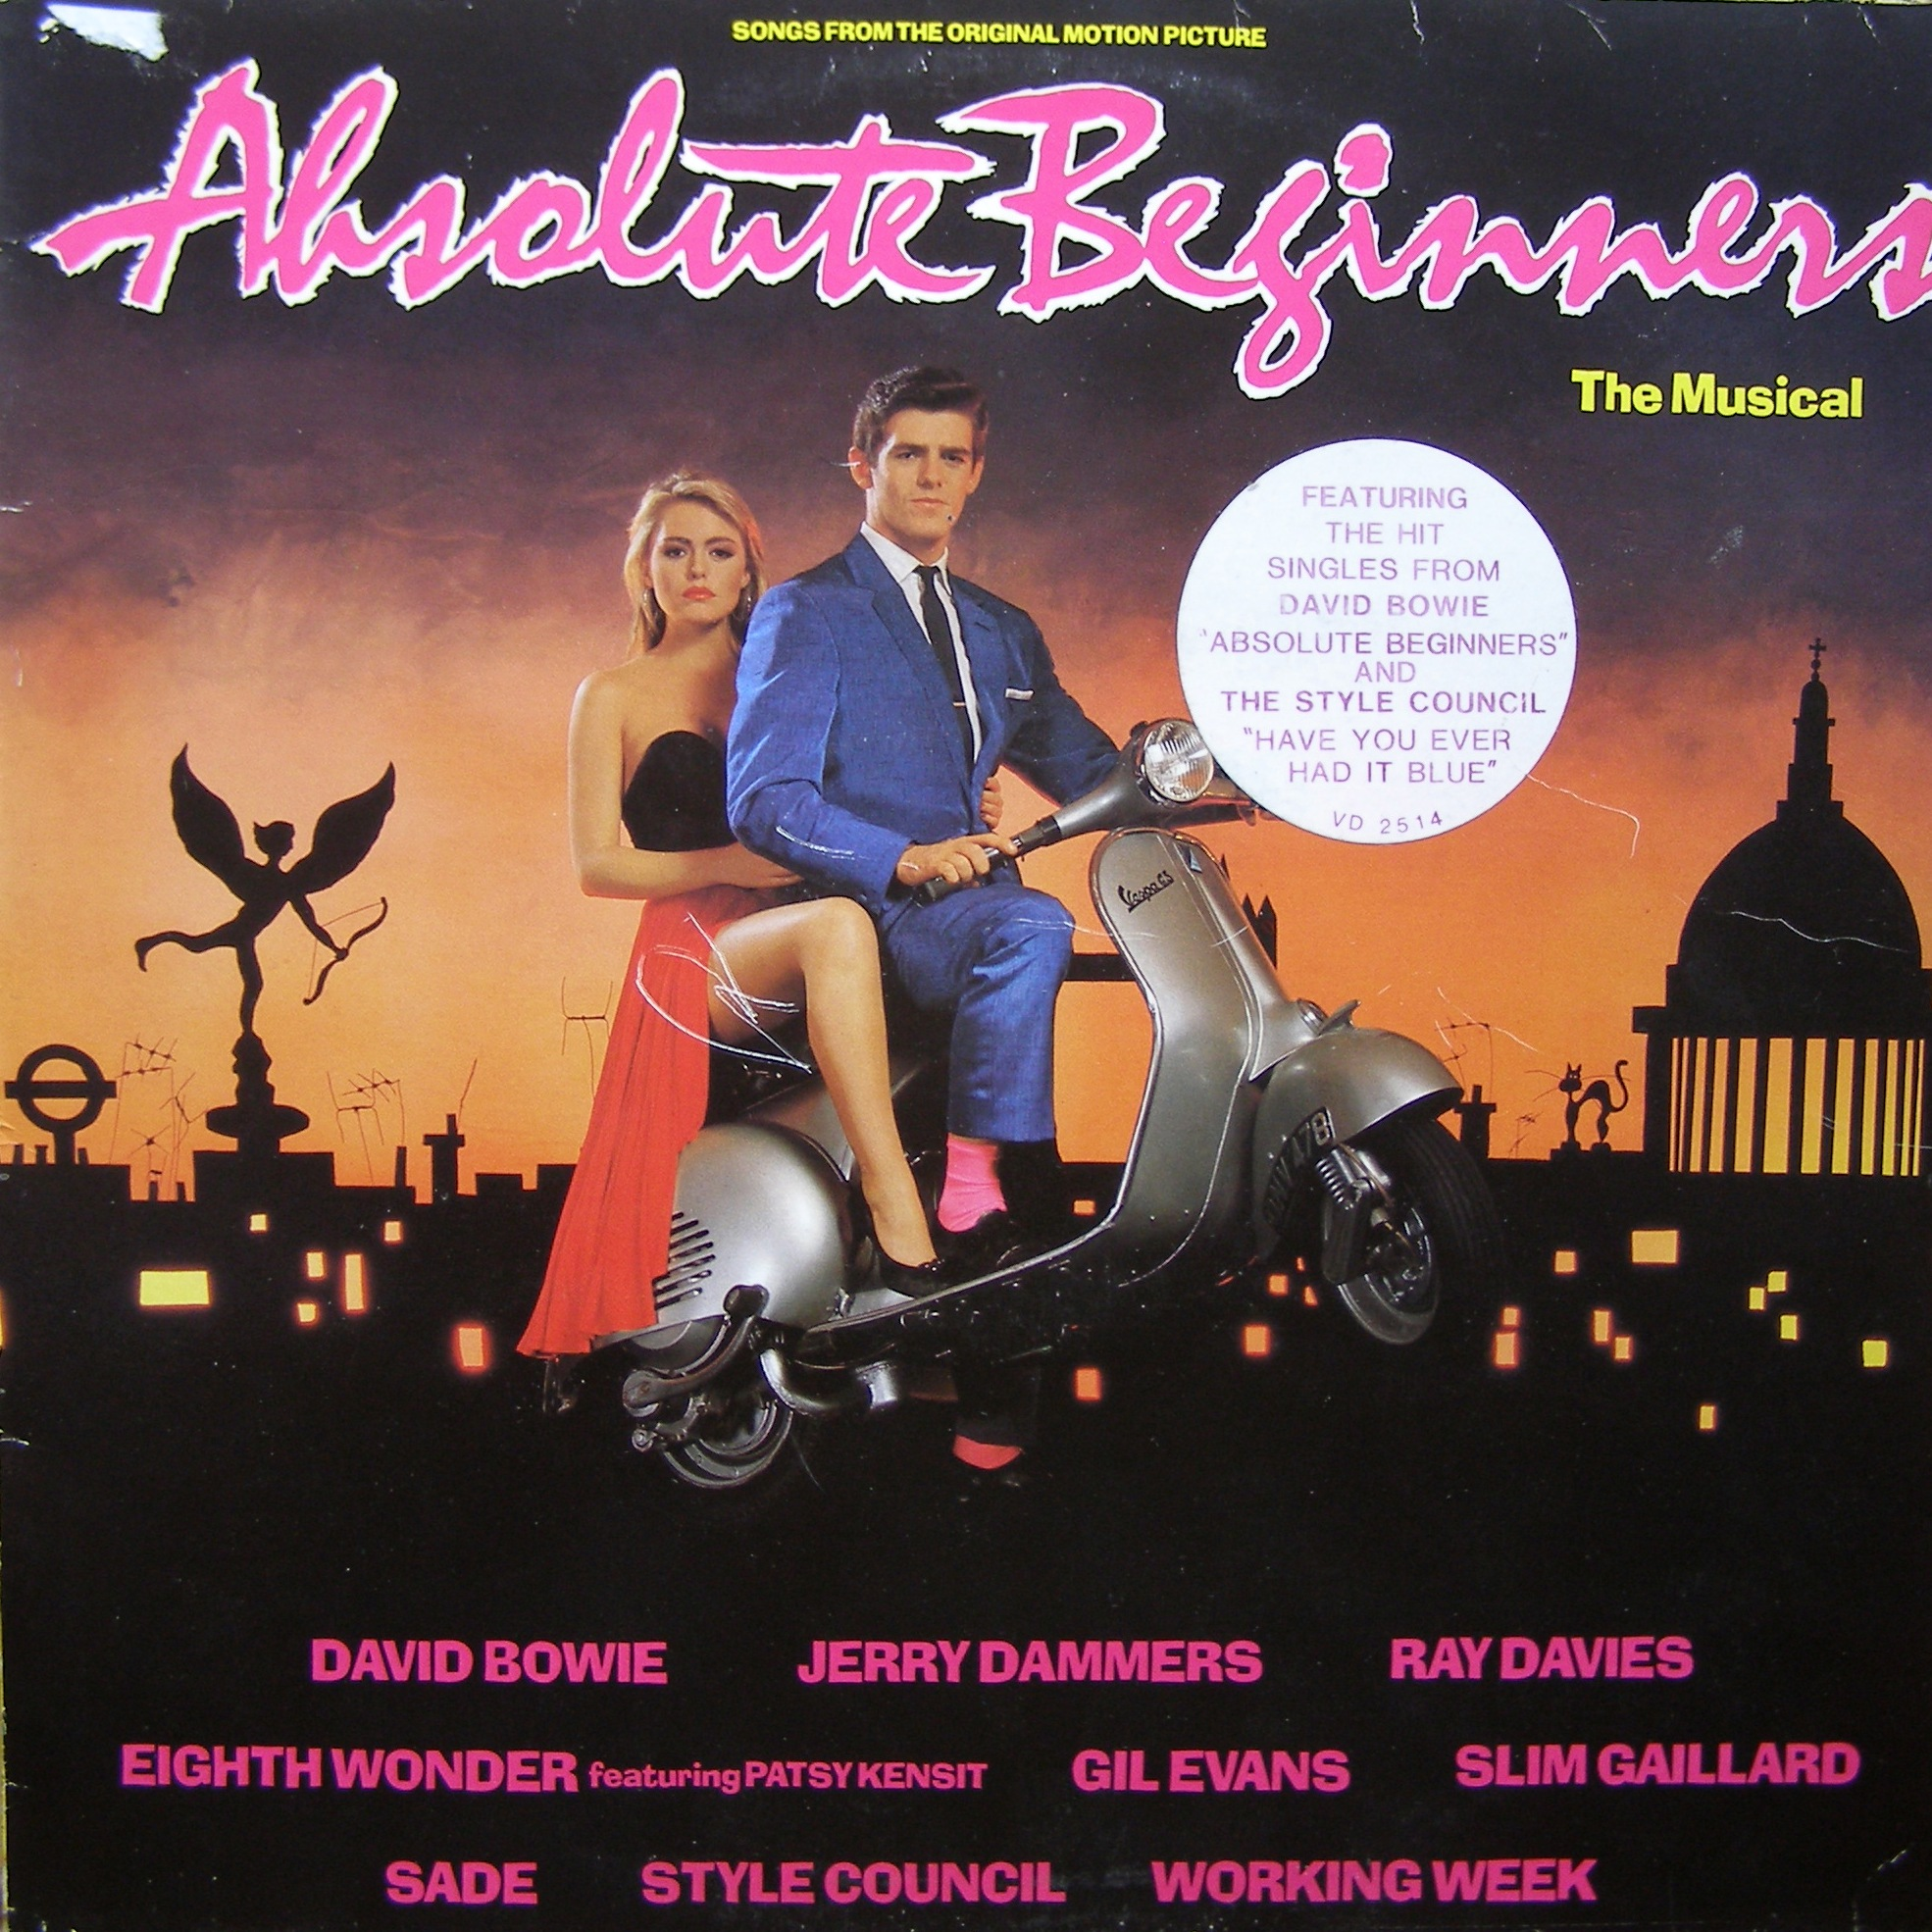 LP Various ‎– Absolute Beginners (Songs From The Original Motion Picture)